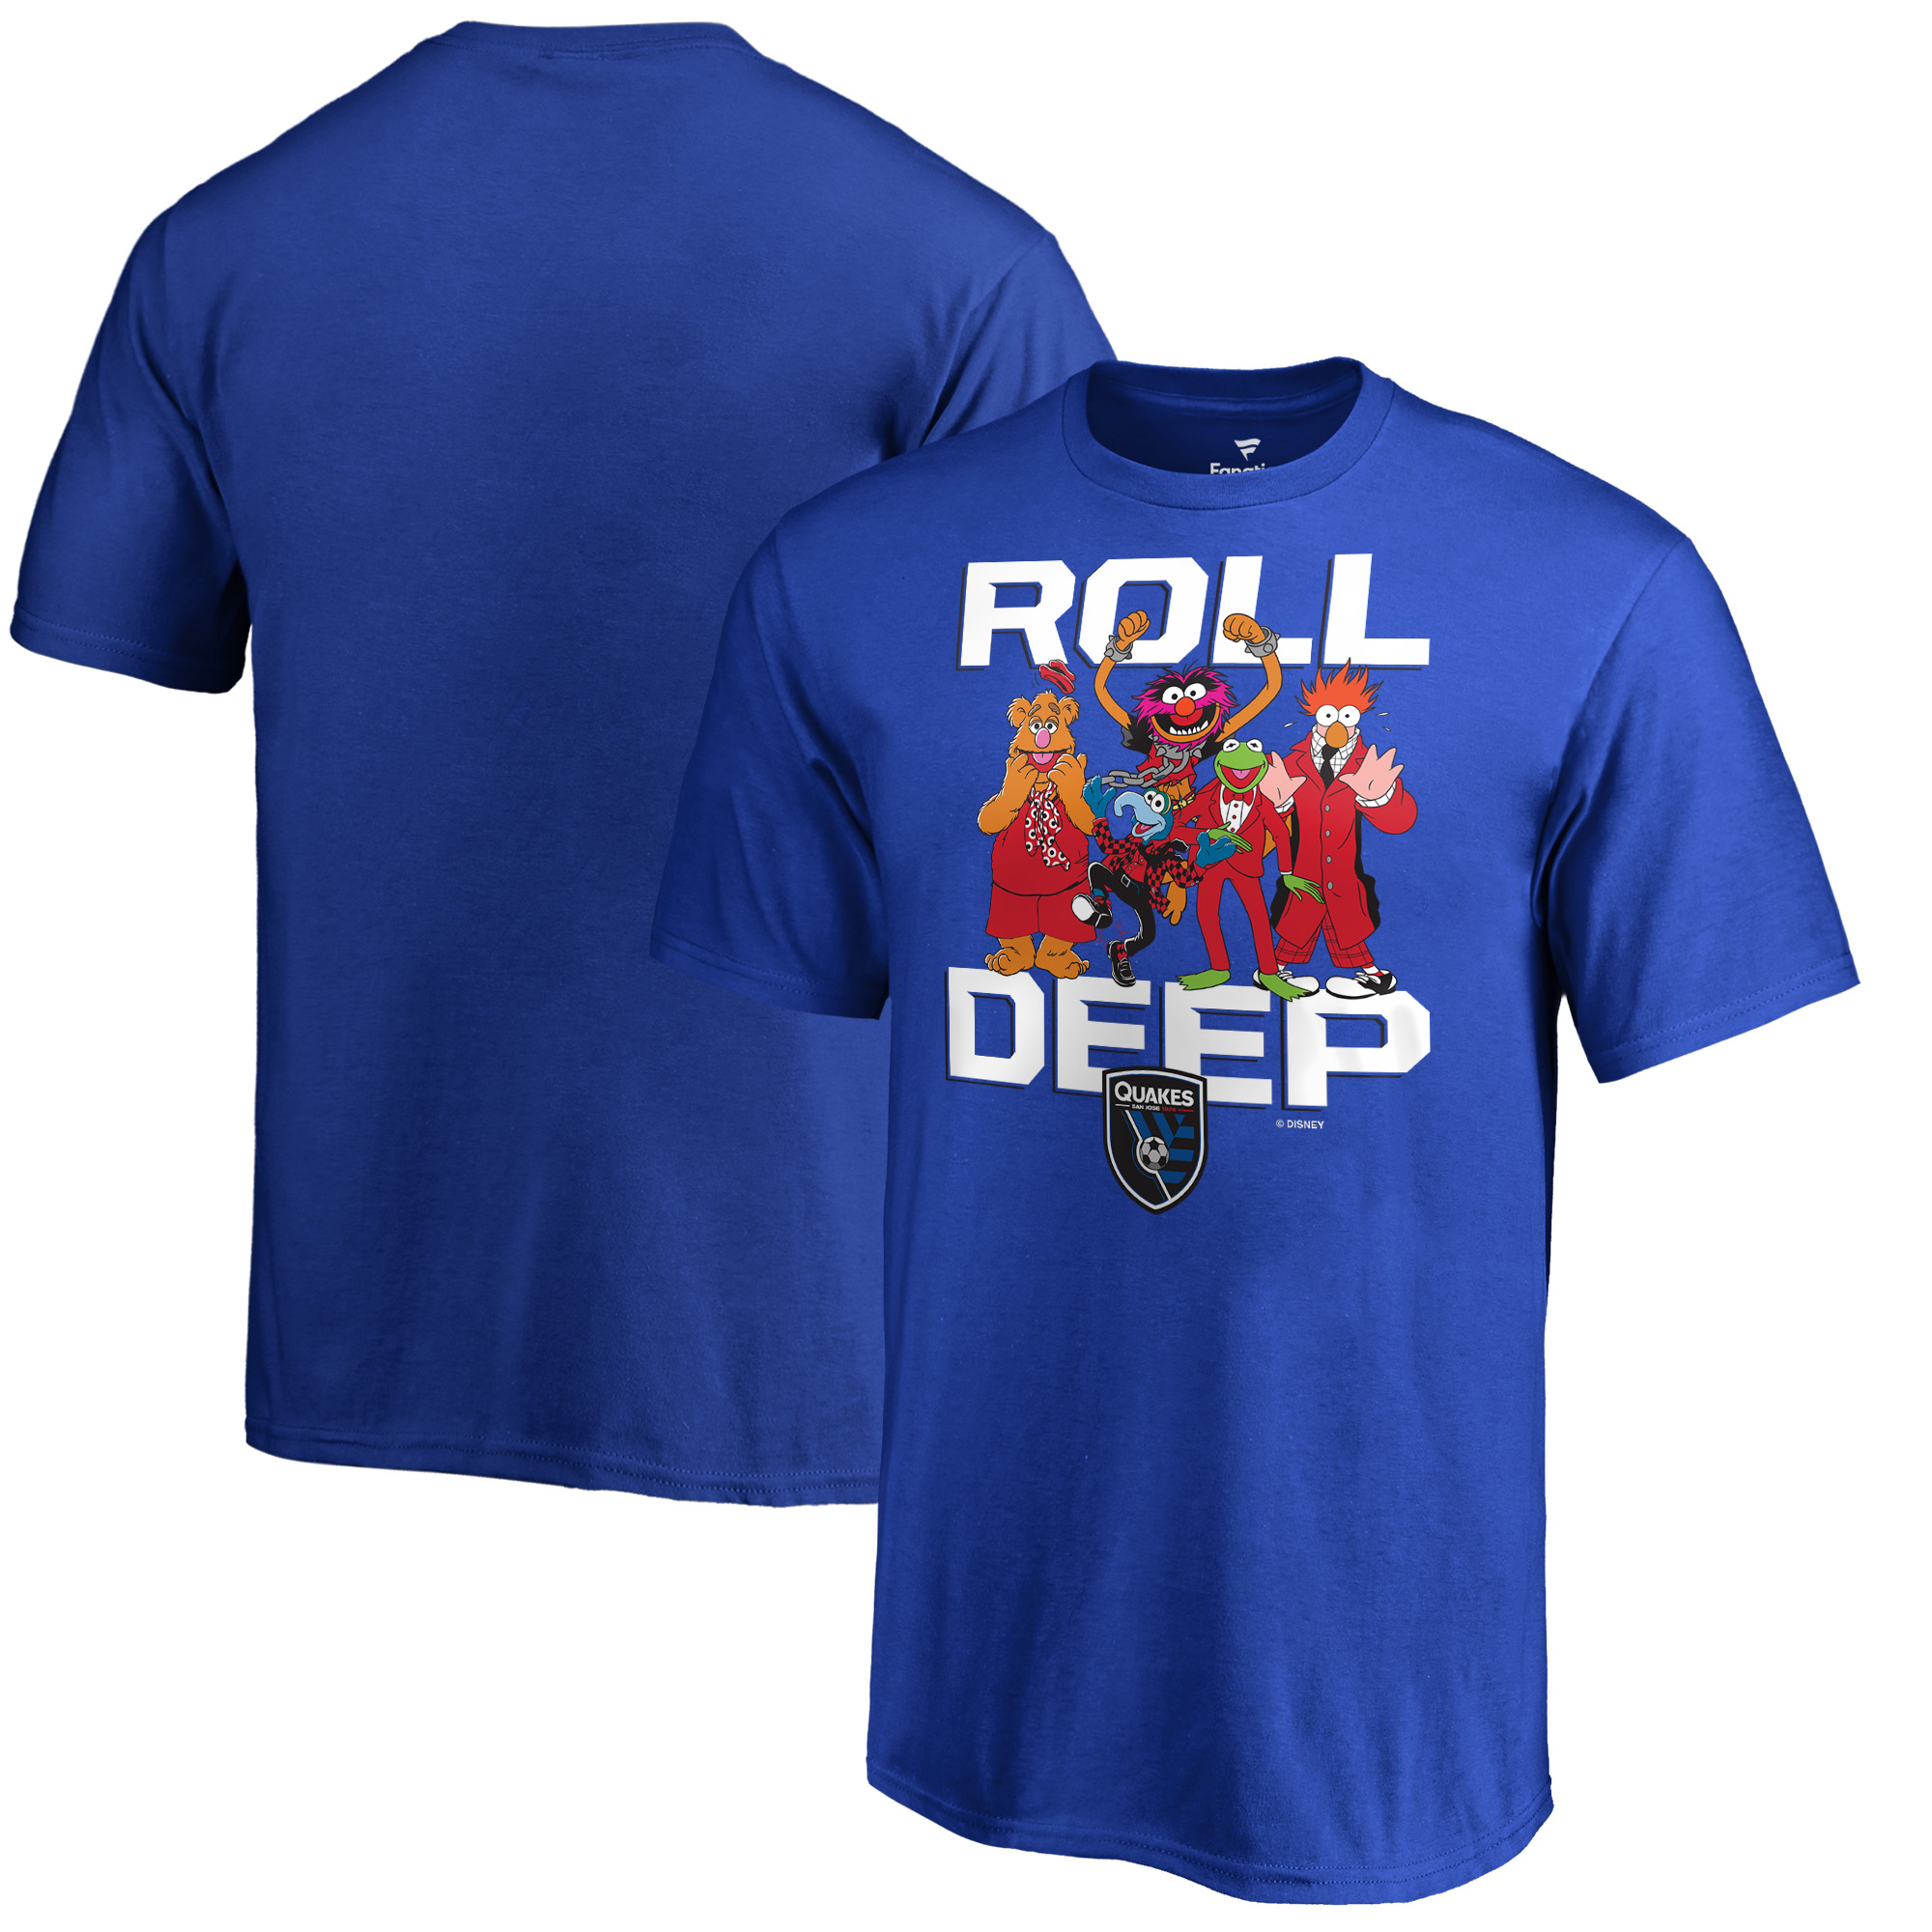 San Jose Earthquakes Fanatics Branded Youth Disney Roll Deep Muppets T-Shirt - Blue